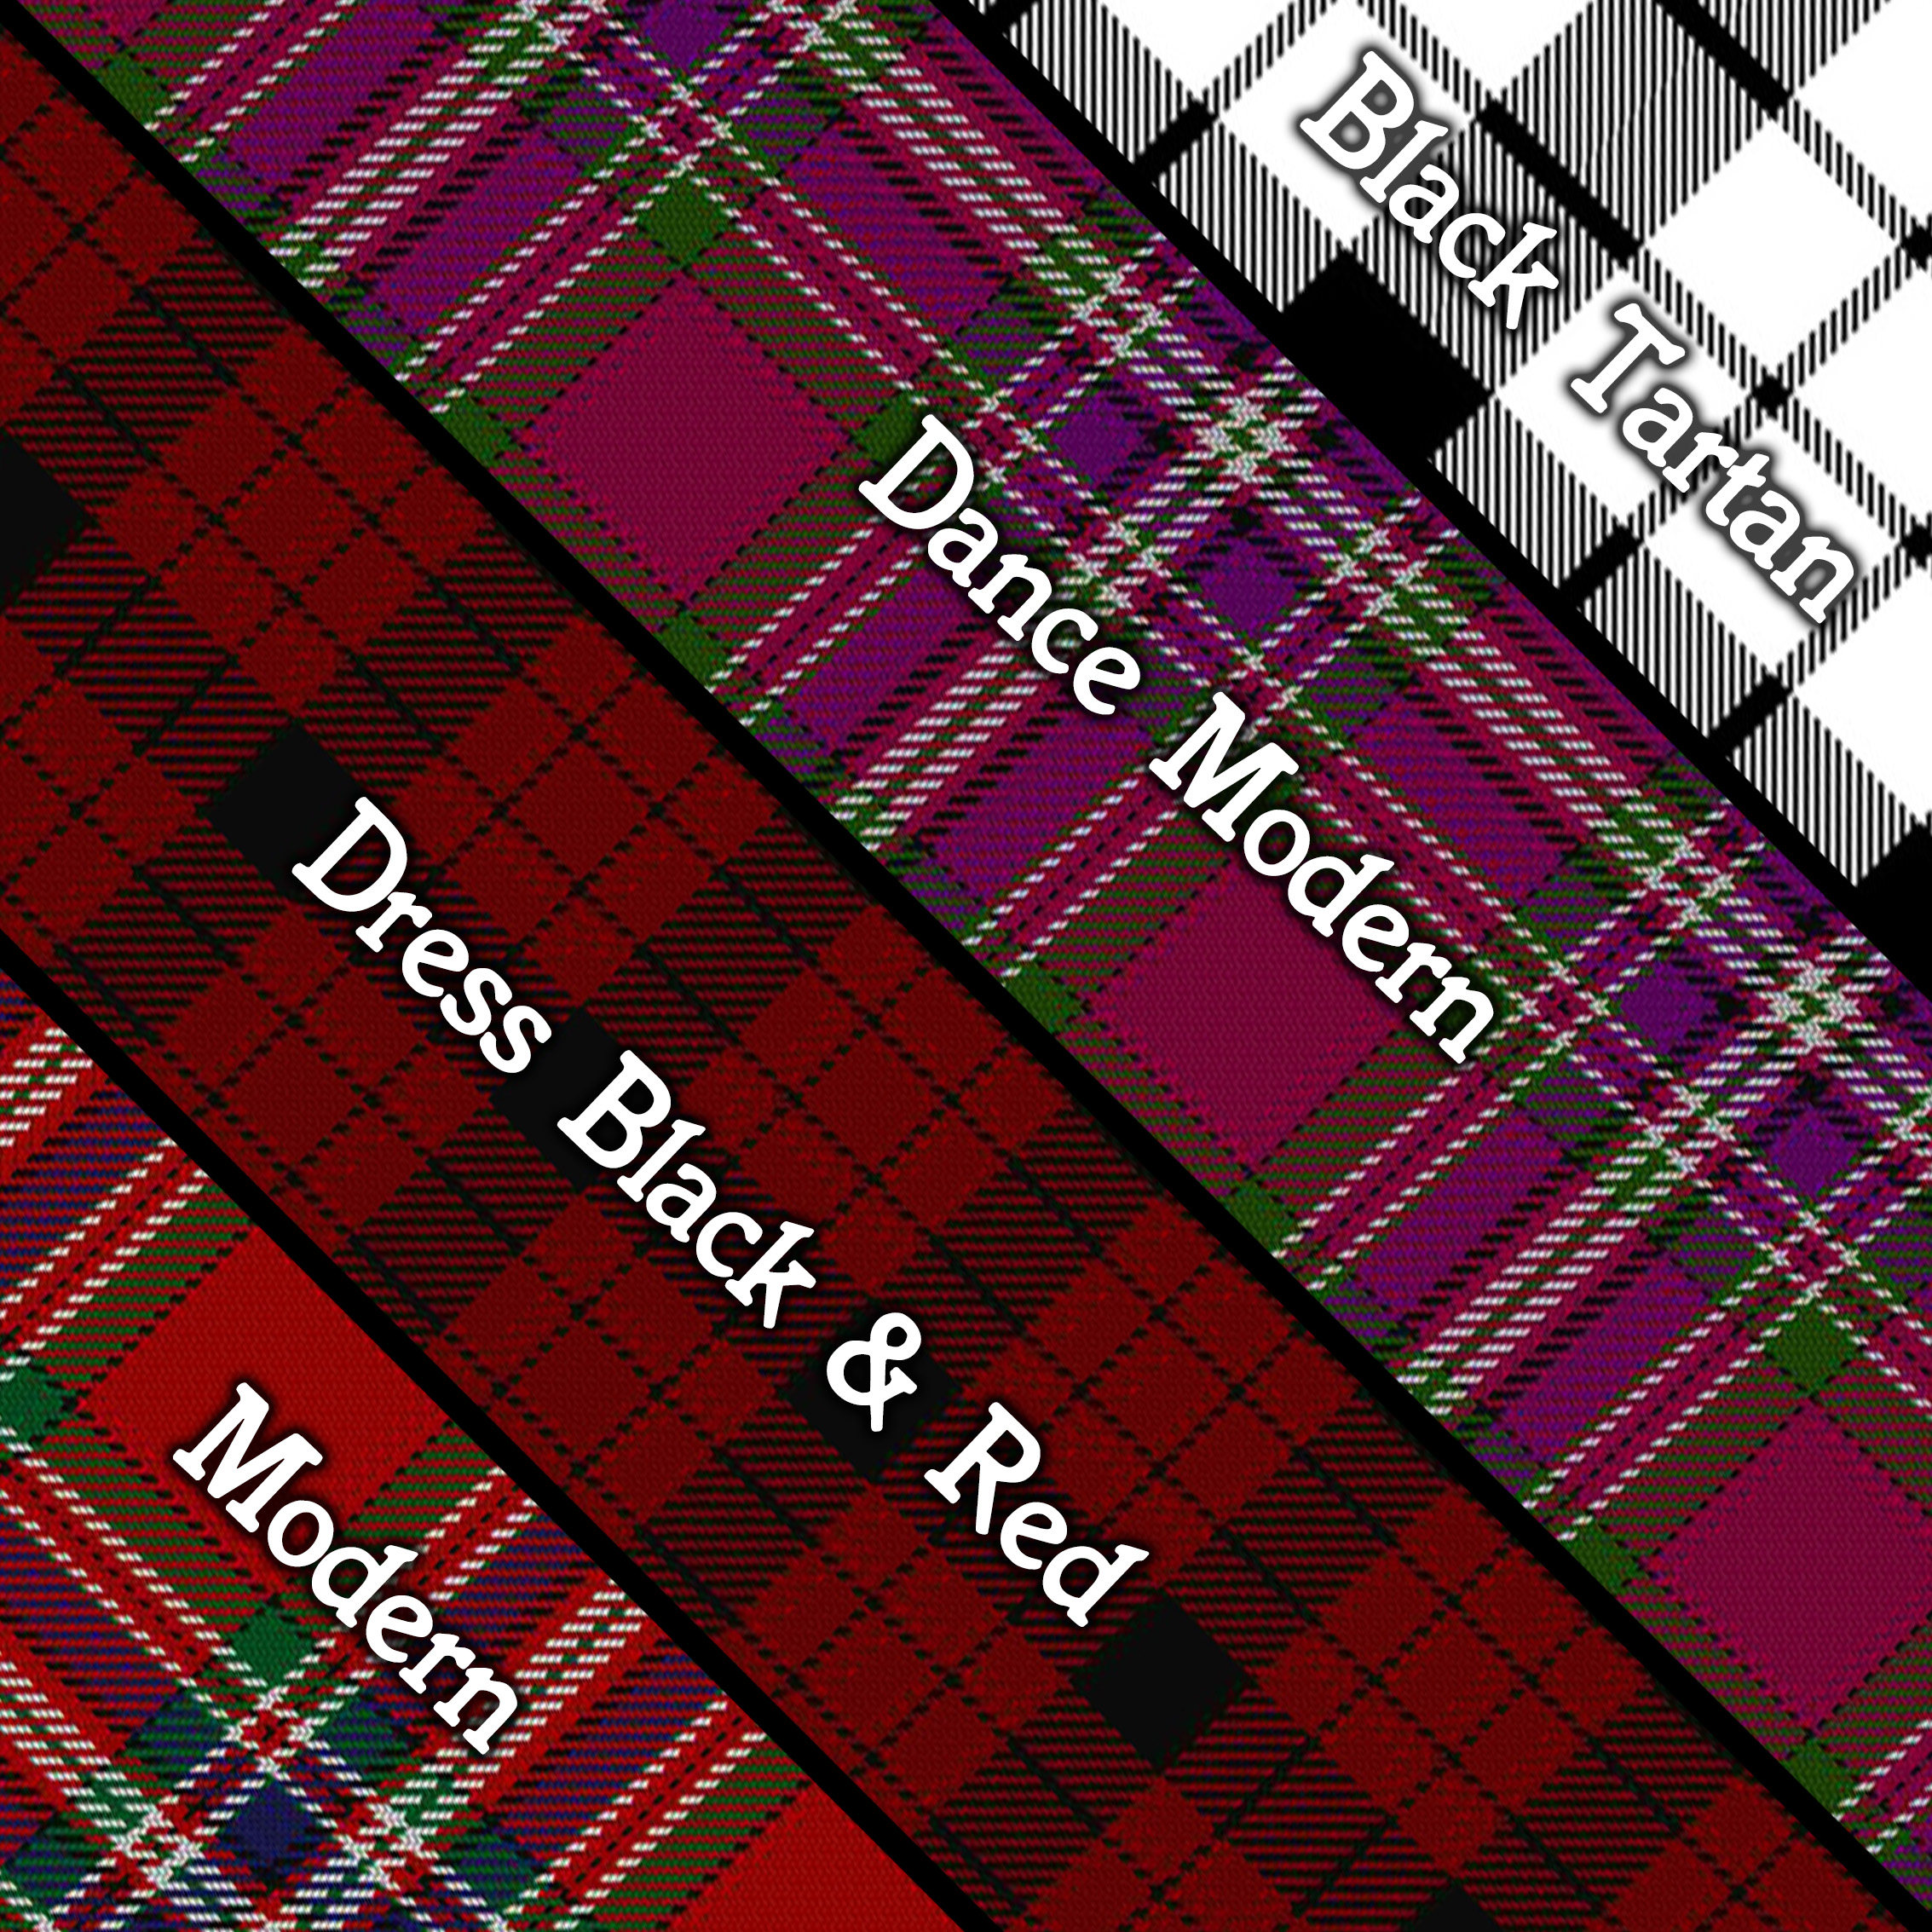 MacFarlane Shield Plaque with Scottish Clan Coat of Arms Badge on Clan  Plaid Tartan Background Wall Art